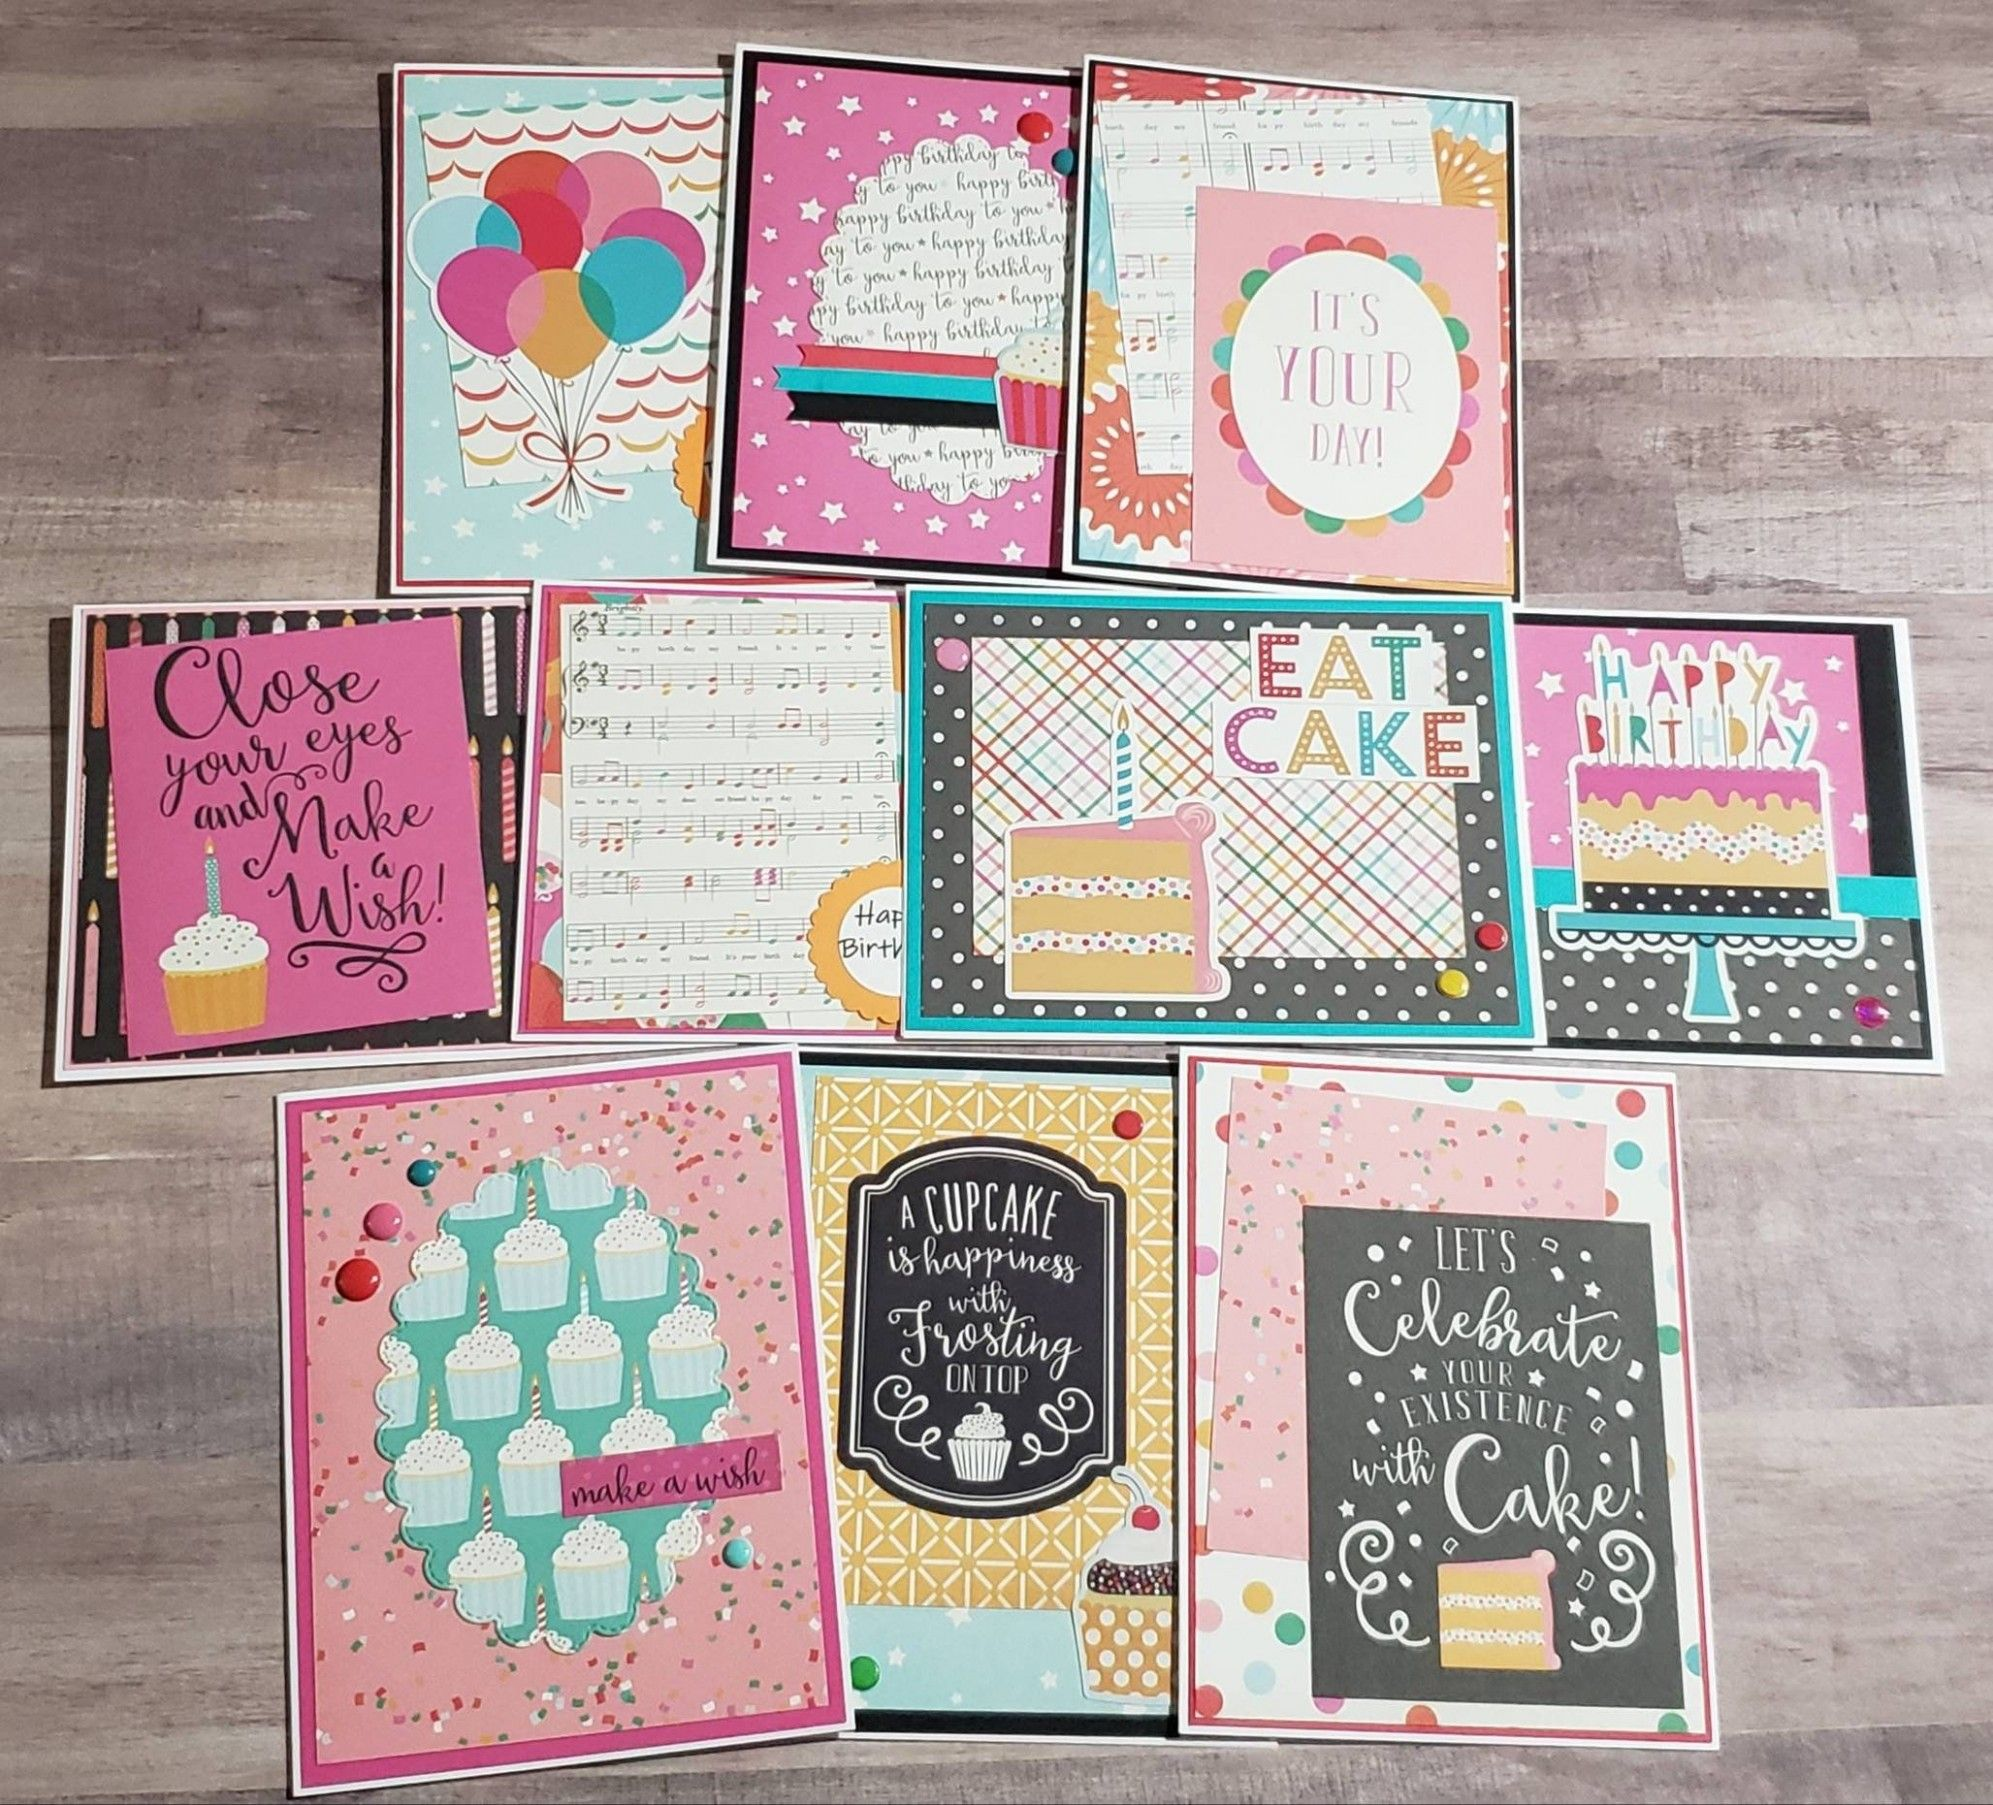 12 Top Buy Greeting Cards Online In 2021 Buy Greeting Cards Homemade Birthday Cards Personalized Greeting Cards